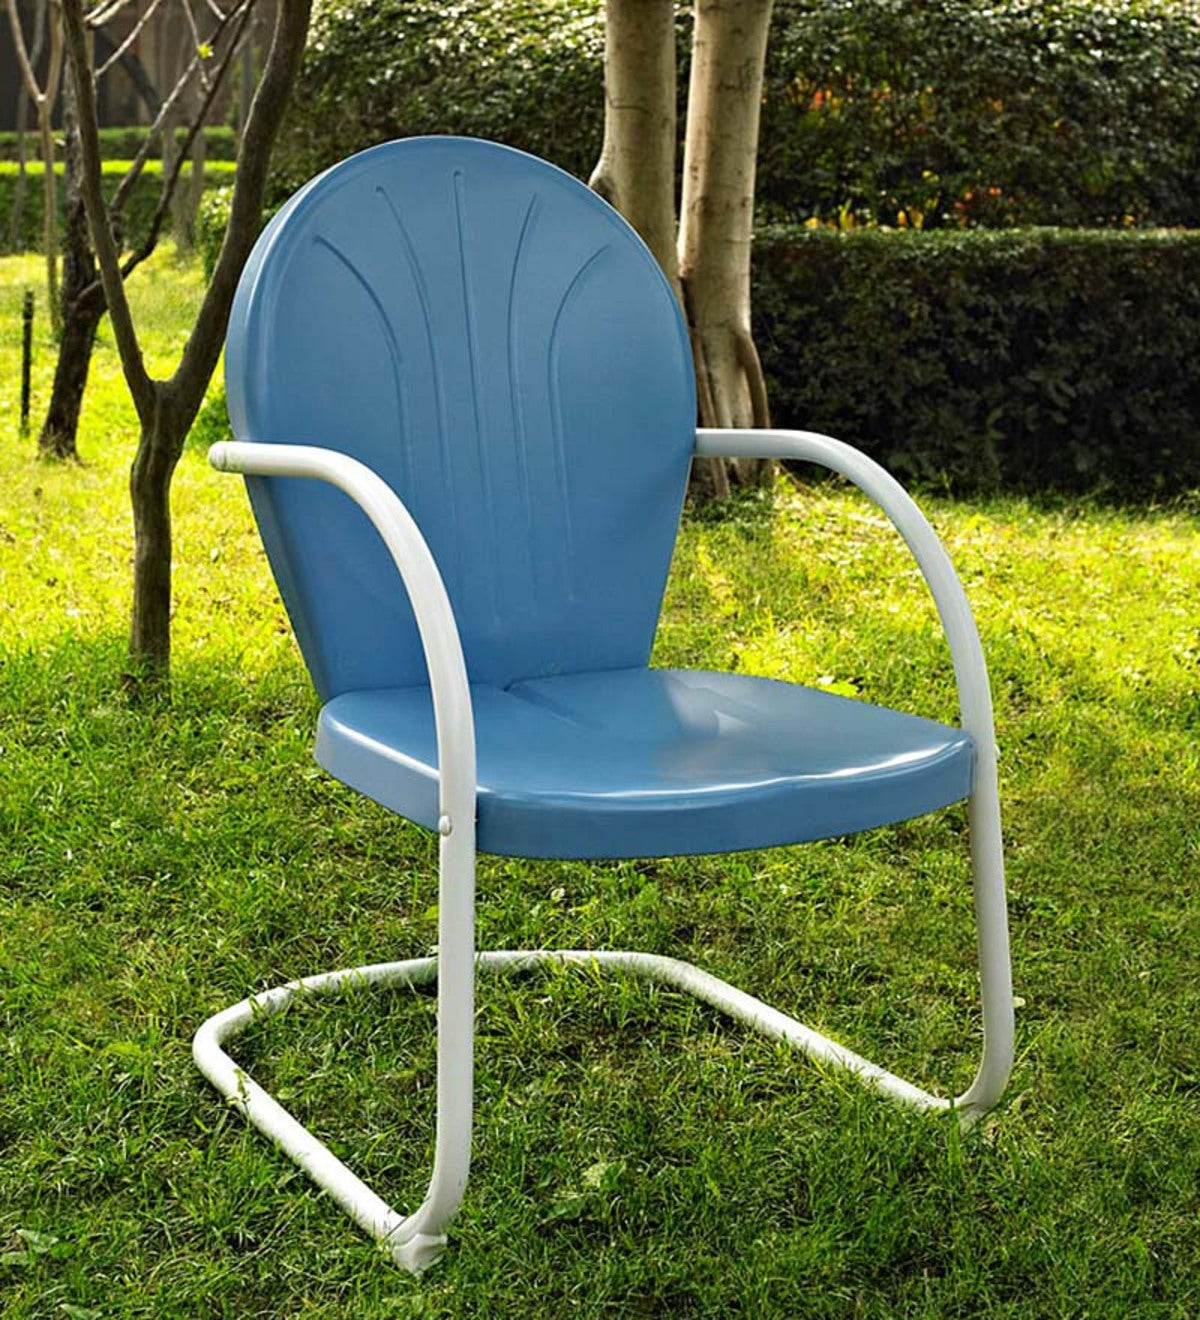 Griffith Retro Metal Lawn Chair Plowhearth